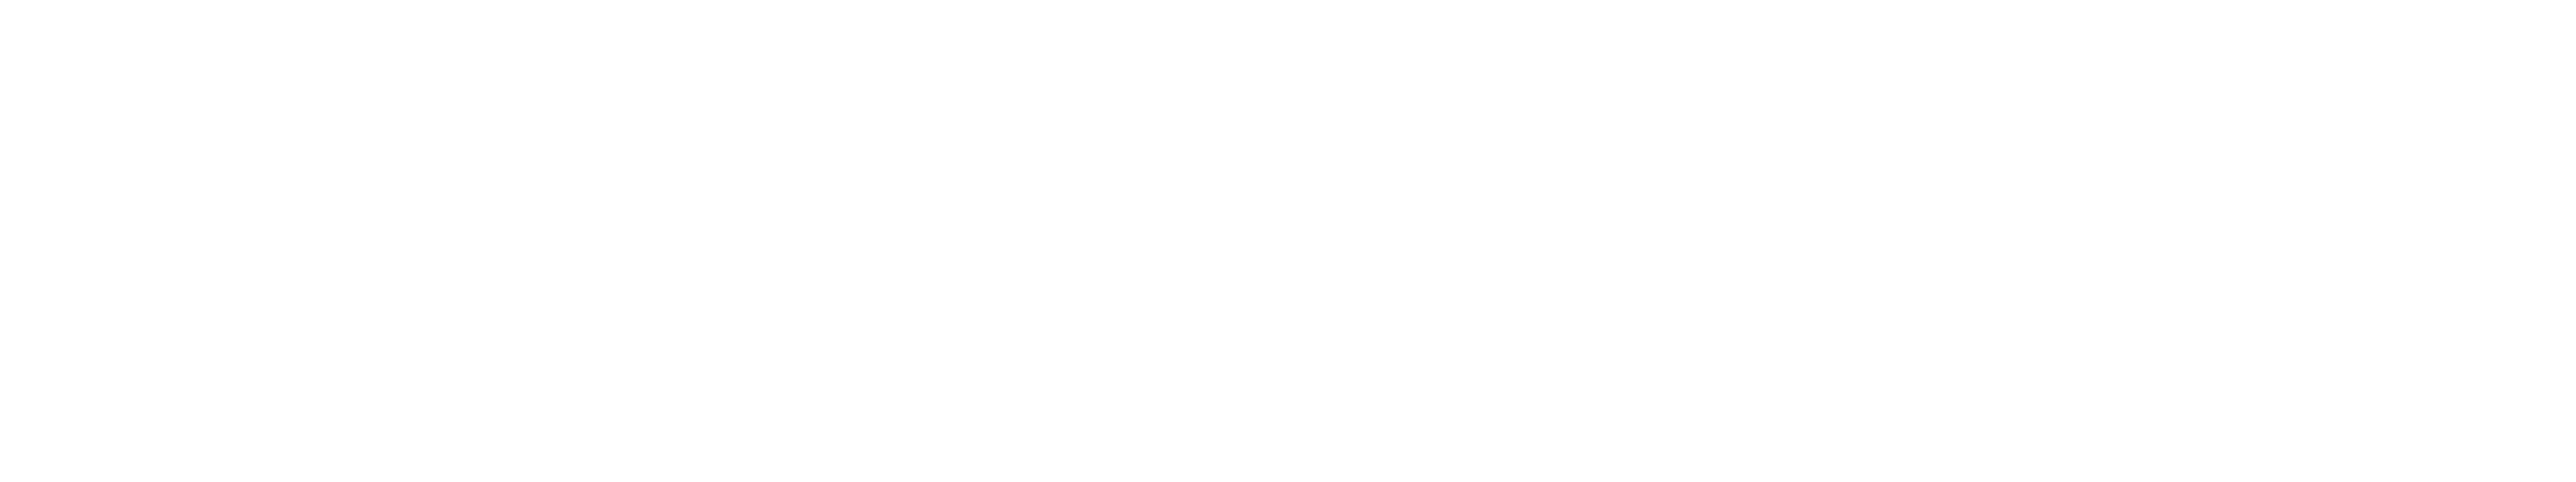 UAB 50th Logo - Shield Only - Greyscale with White Outline